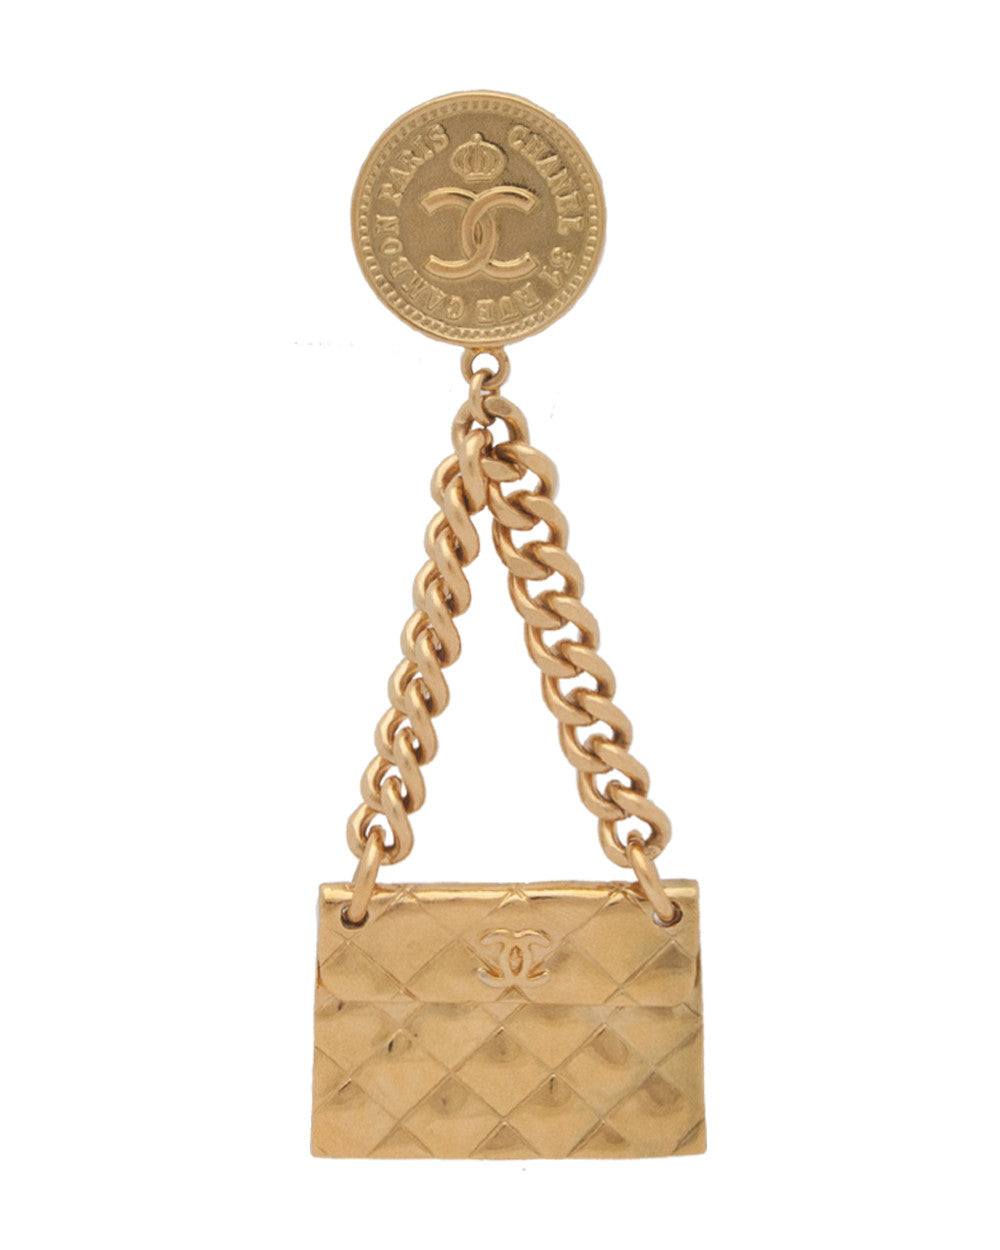 Vintage Chanel Classic Flap Bag Brooch